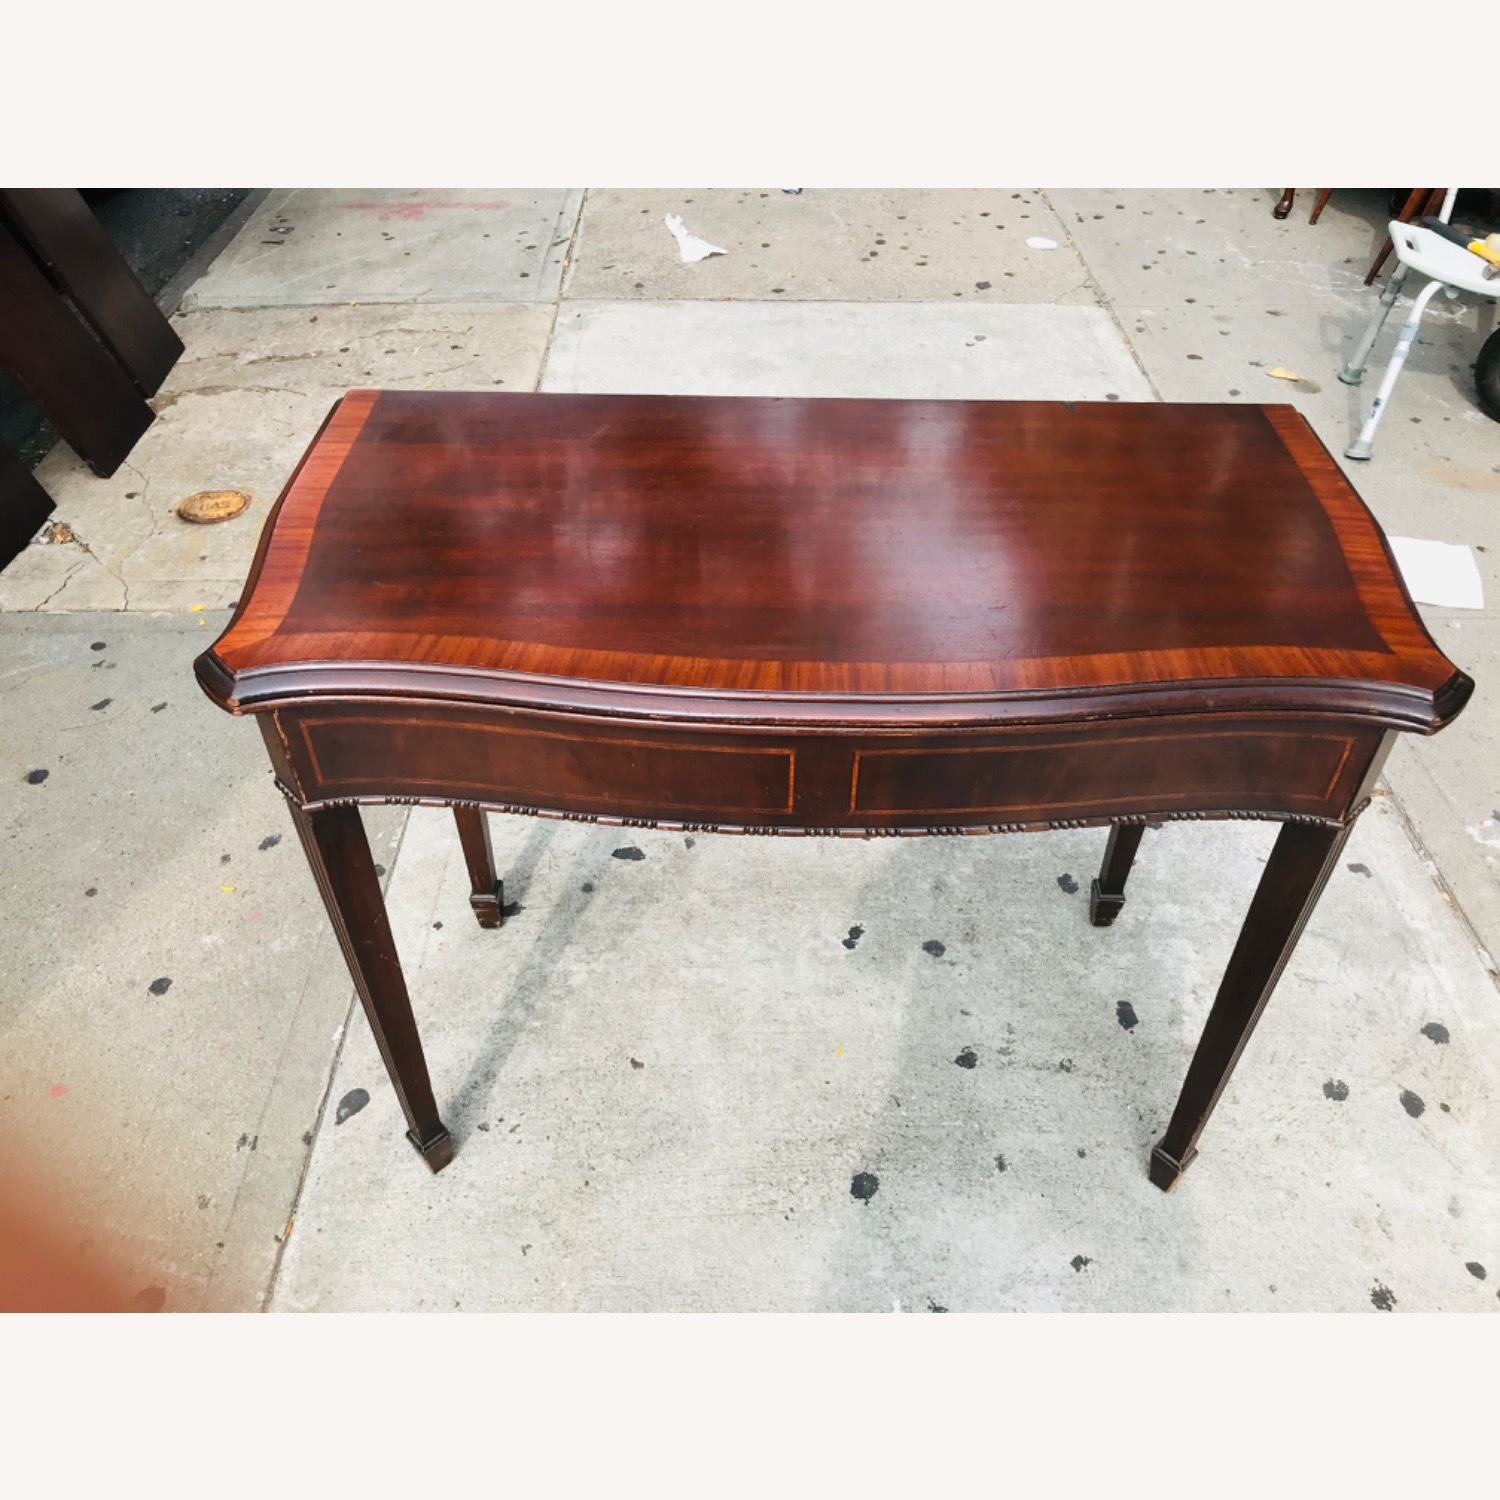 Antique 1920s Mahogany Table w/3 Leaves  - image-2